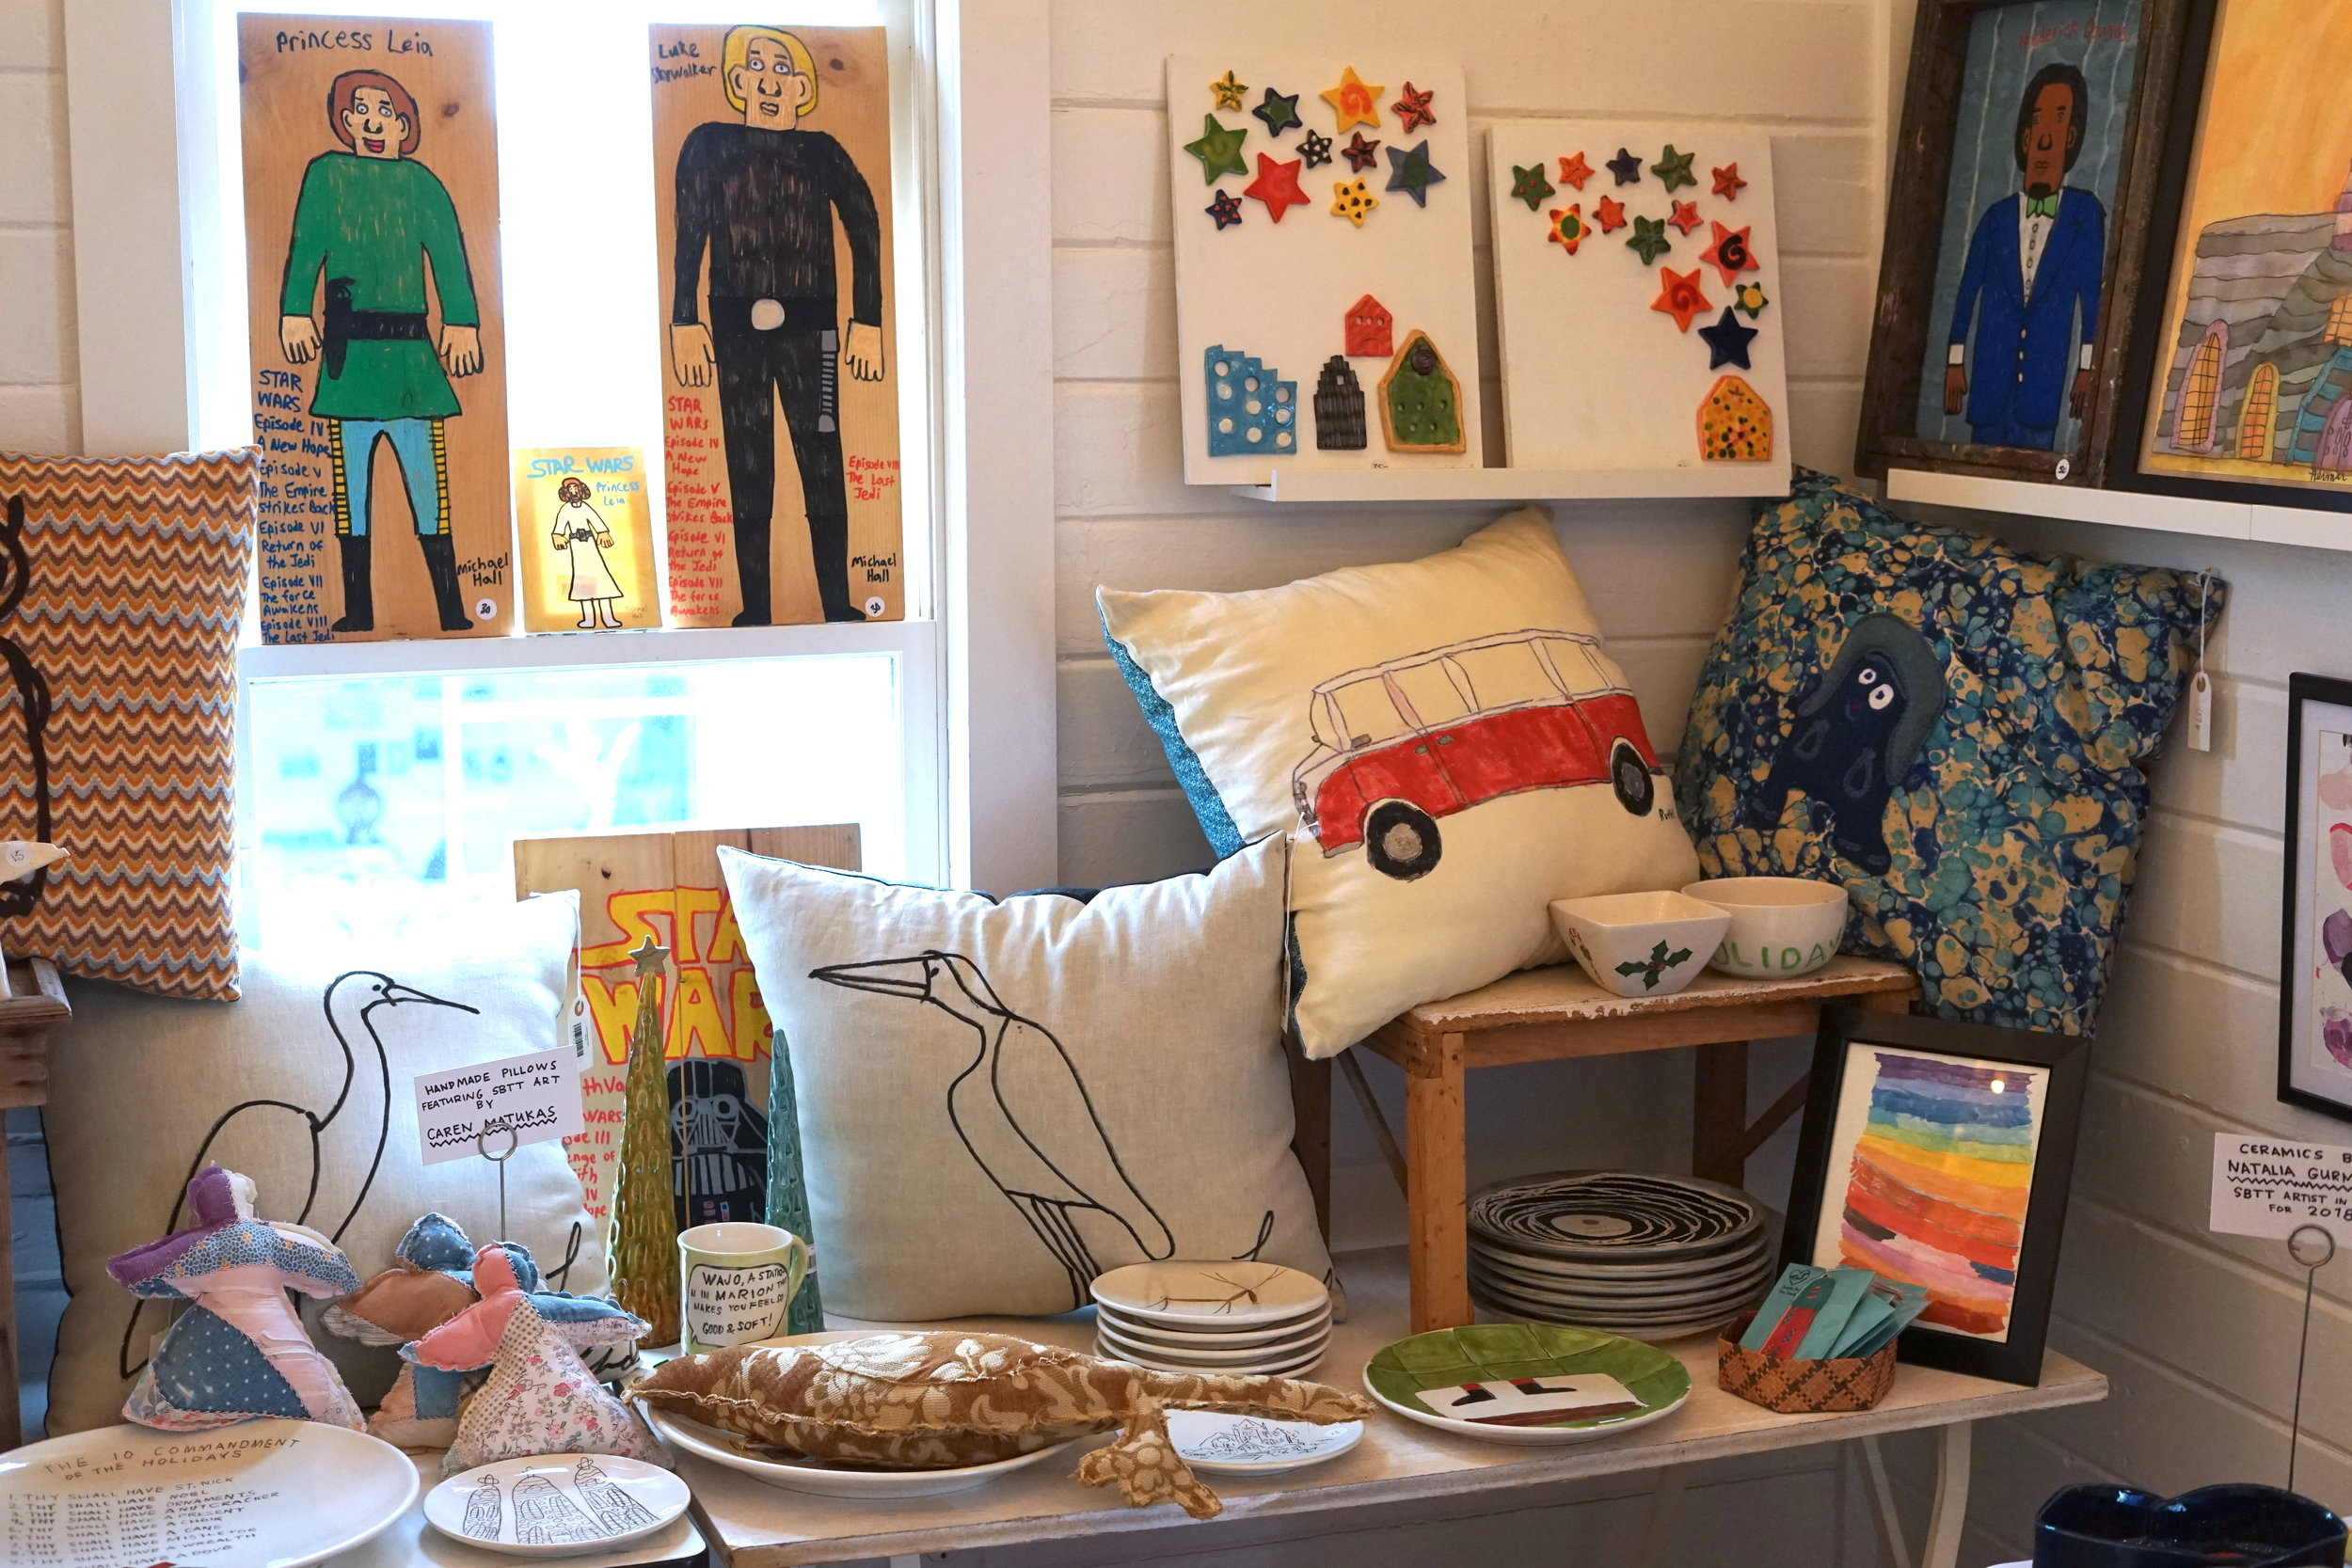 7. One-of-a-kind Gifts, Ornaments, and Ceramics - We'd be remiss to not highlight all of our great one-of-a-kind items. Whether it's Star Wars themed ornaments, adorable ceramic dog bowls, hand-dyed aprons, napkins and napkin rings, or handmade pillows and potholders inspired by SBTT art, we've got you covered.